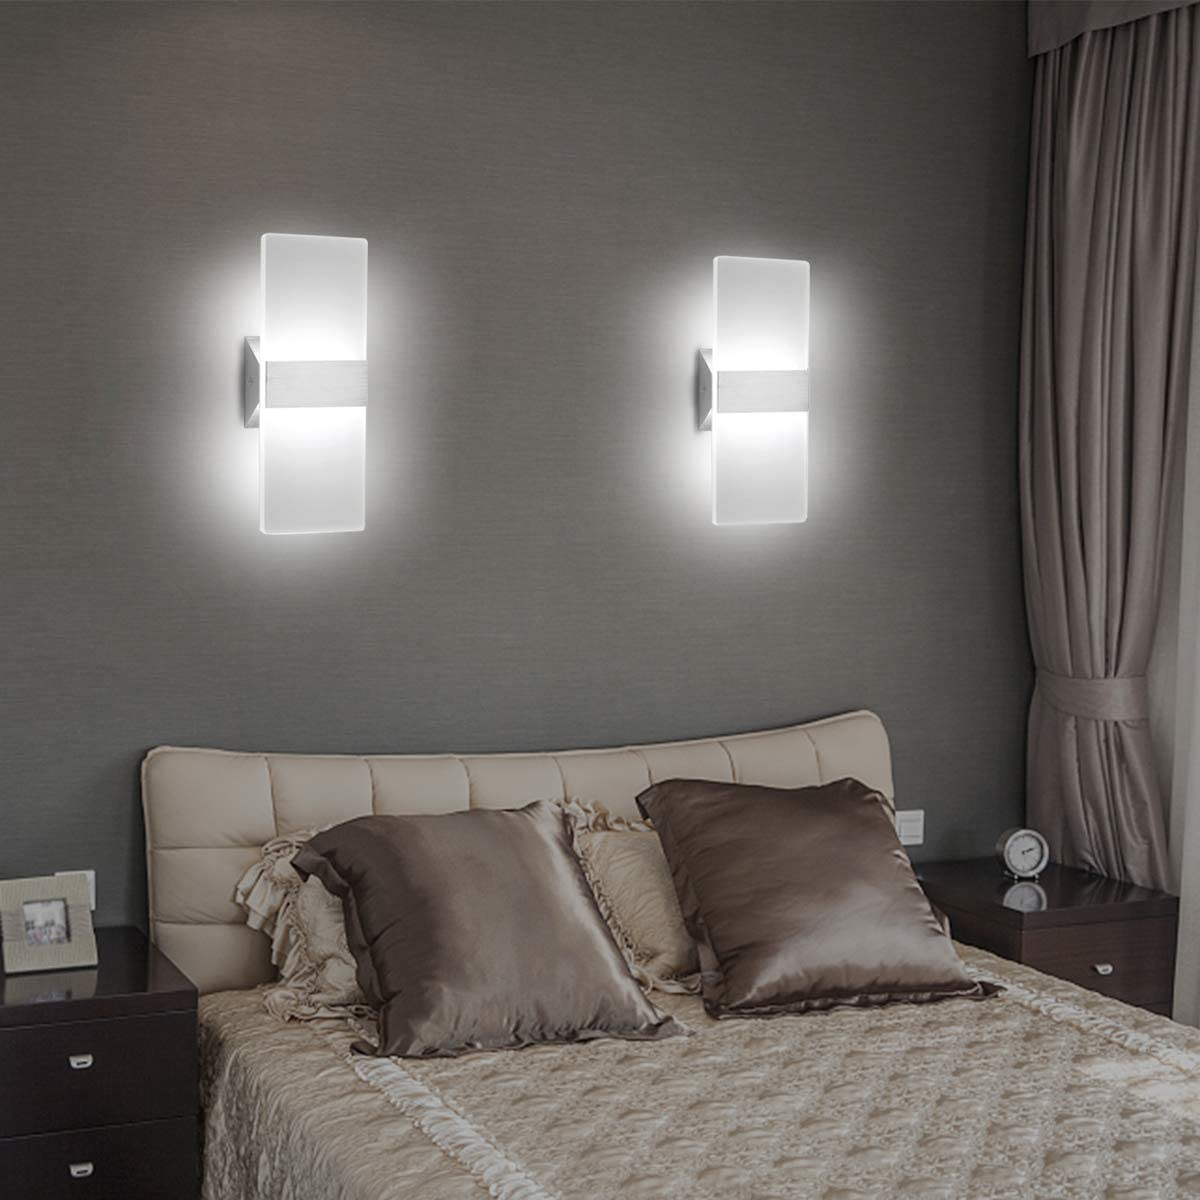 Modern Led Acrylic Wall Sconce 12w Cool White Up Down Lamp For Bedroom Corridor Stairs Bathroom